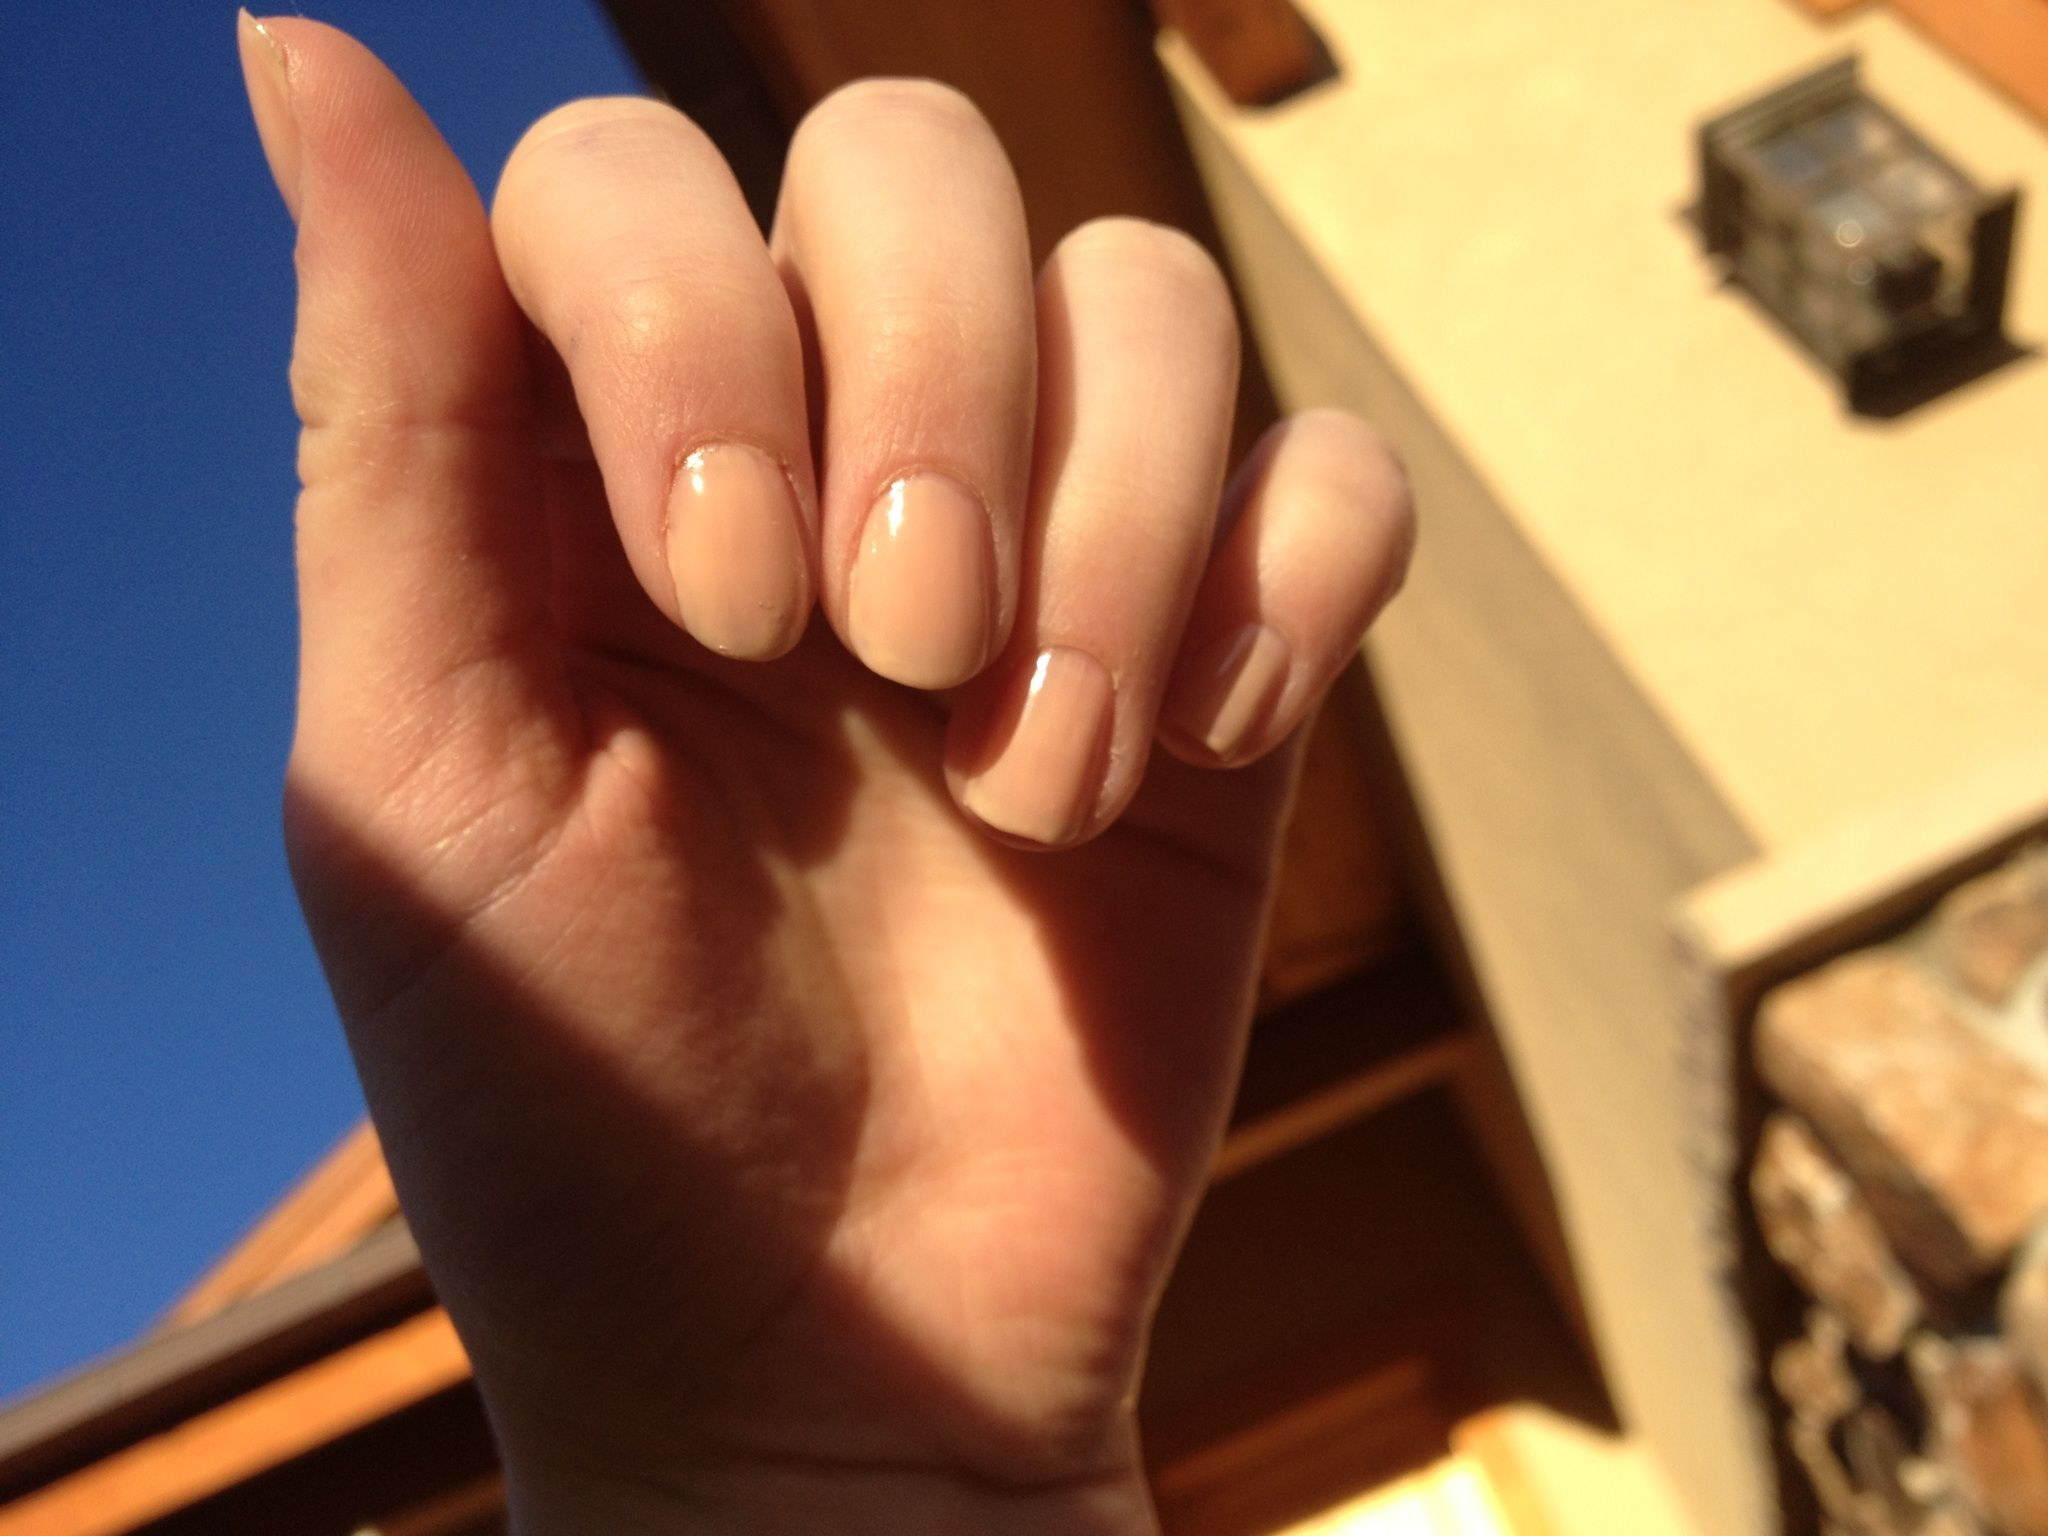 Nude nails :) @Lizzy Rosenbloom